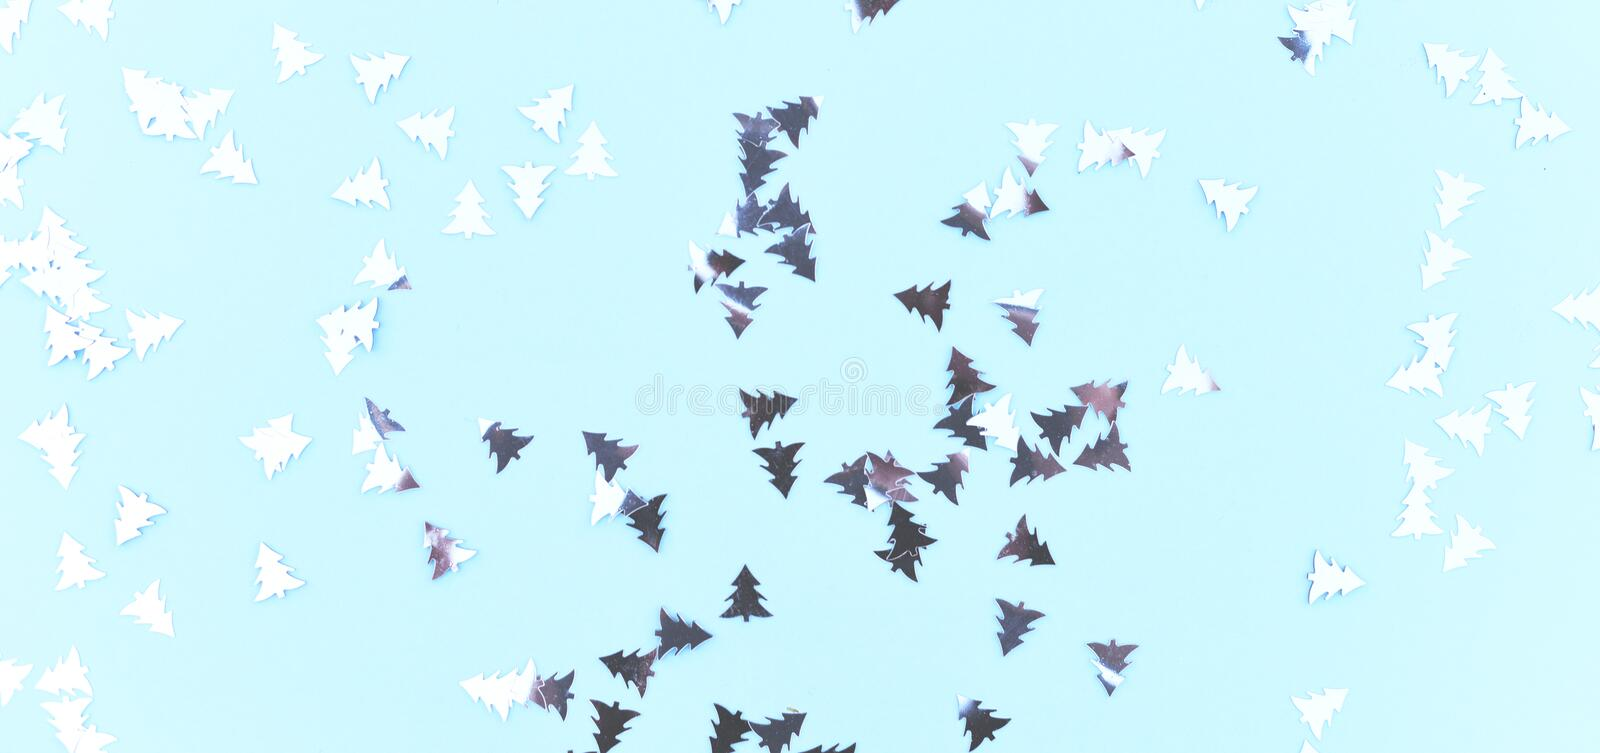 Silvery Christmas confetti on a blue background. royalty free stock photo